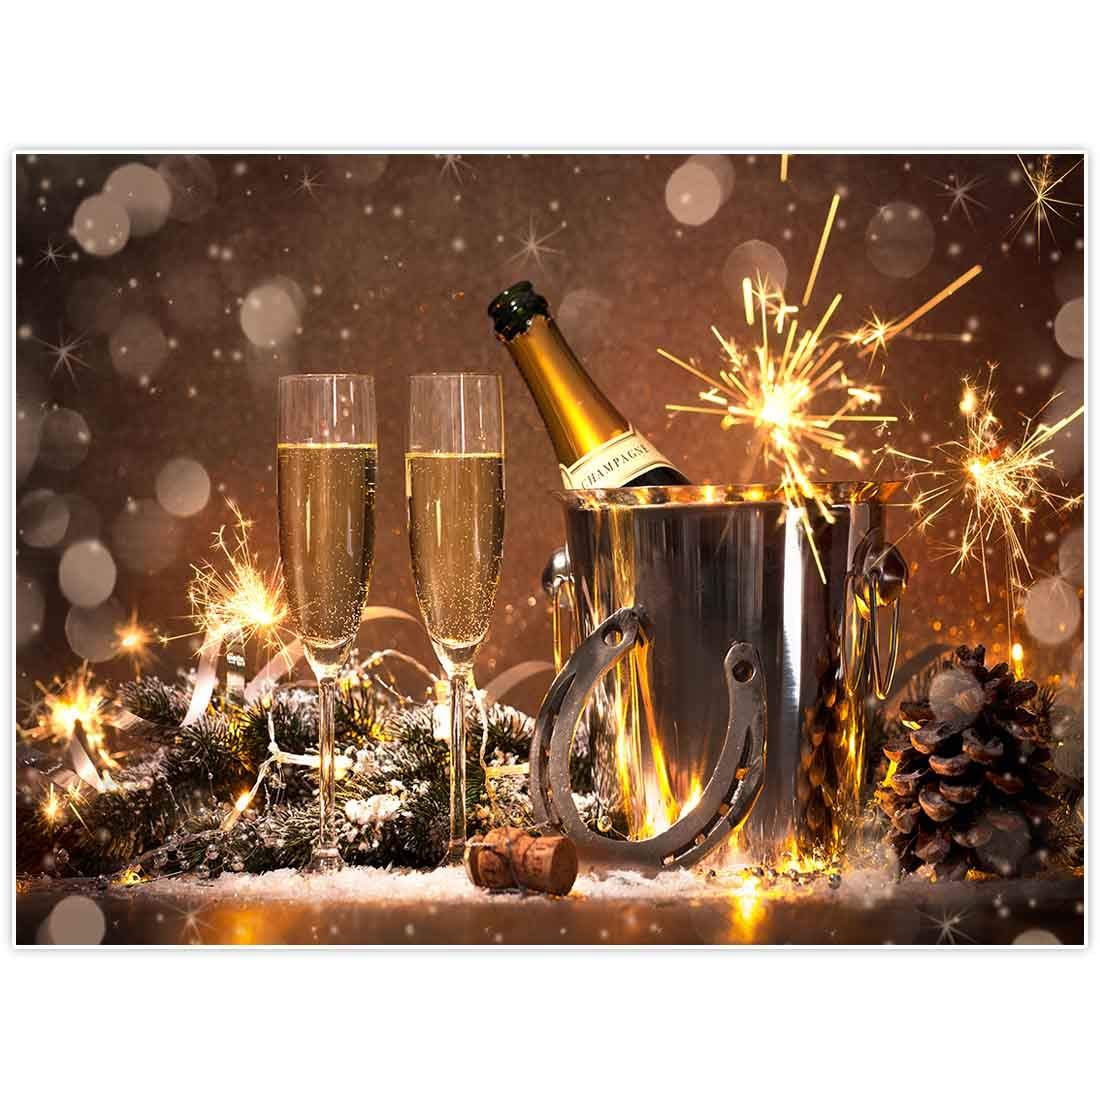 Allenjoy 8x6ft New Year Party Backdrop NYE Supplies Bokeh Golden Glitter Annual Events Family Home Decorations Celebration Festival Photoshoot Props Photography Background Favors Photo Booth Banner